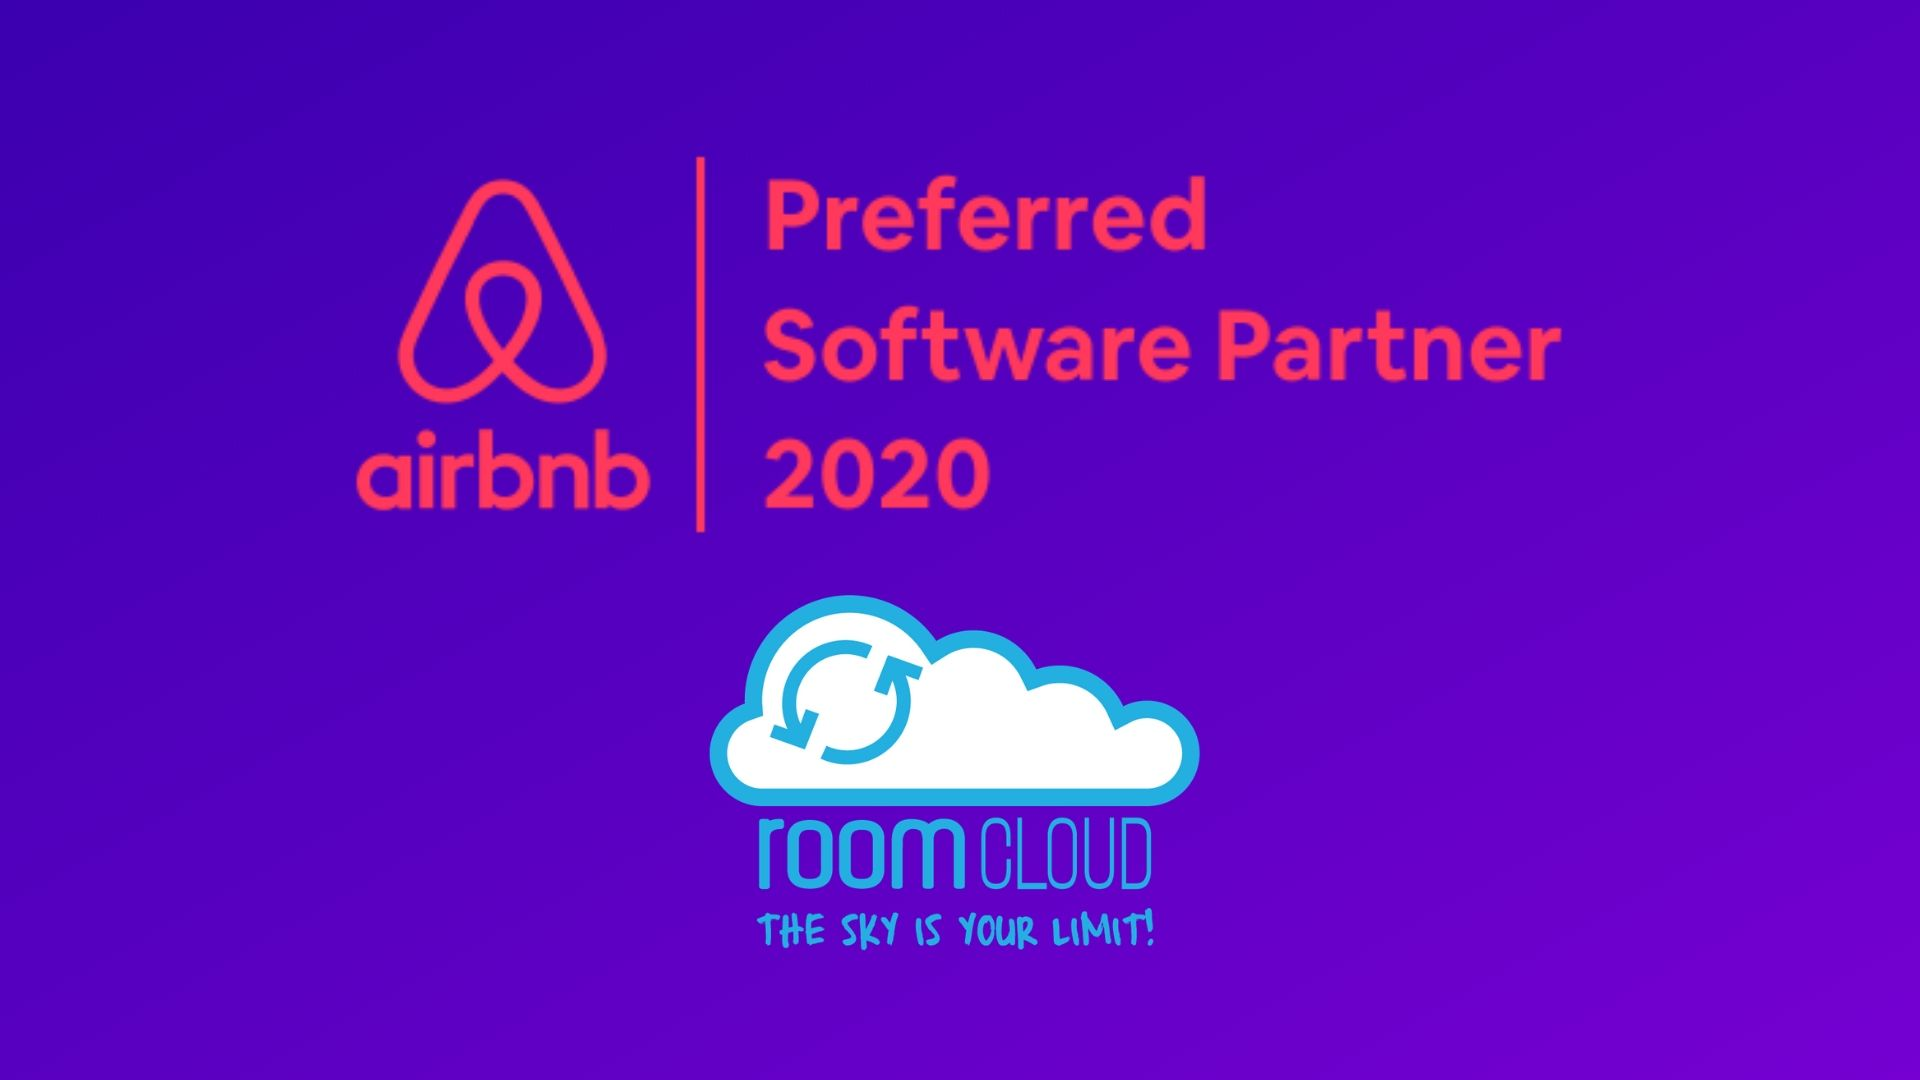 RoomCloud è Preferred Software Partner di Airbnb!